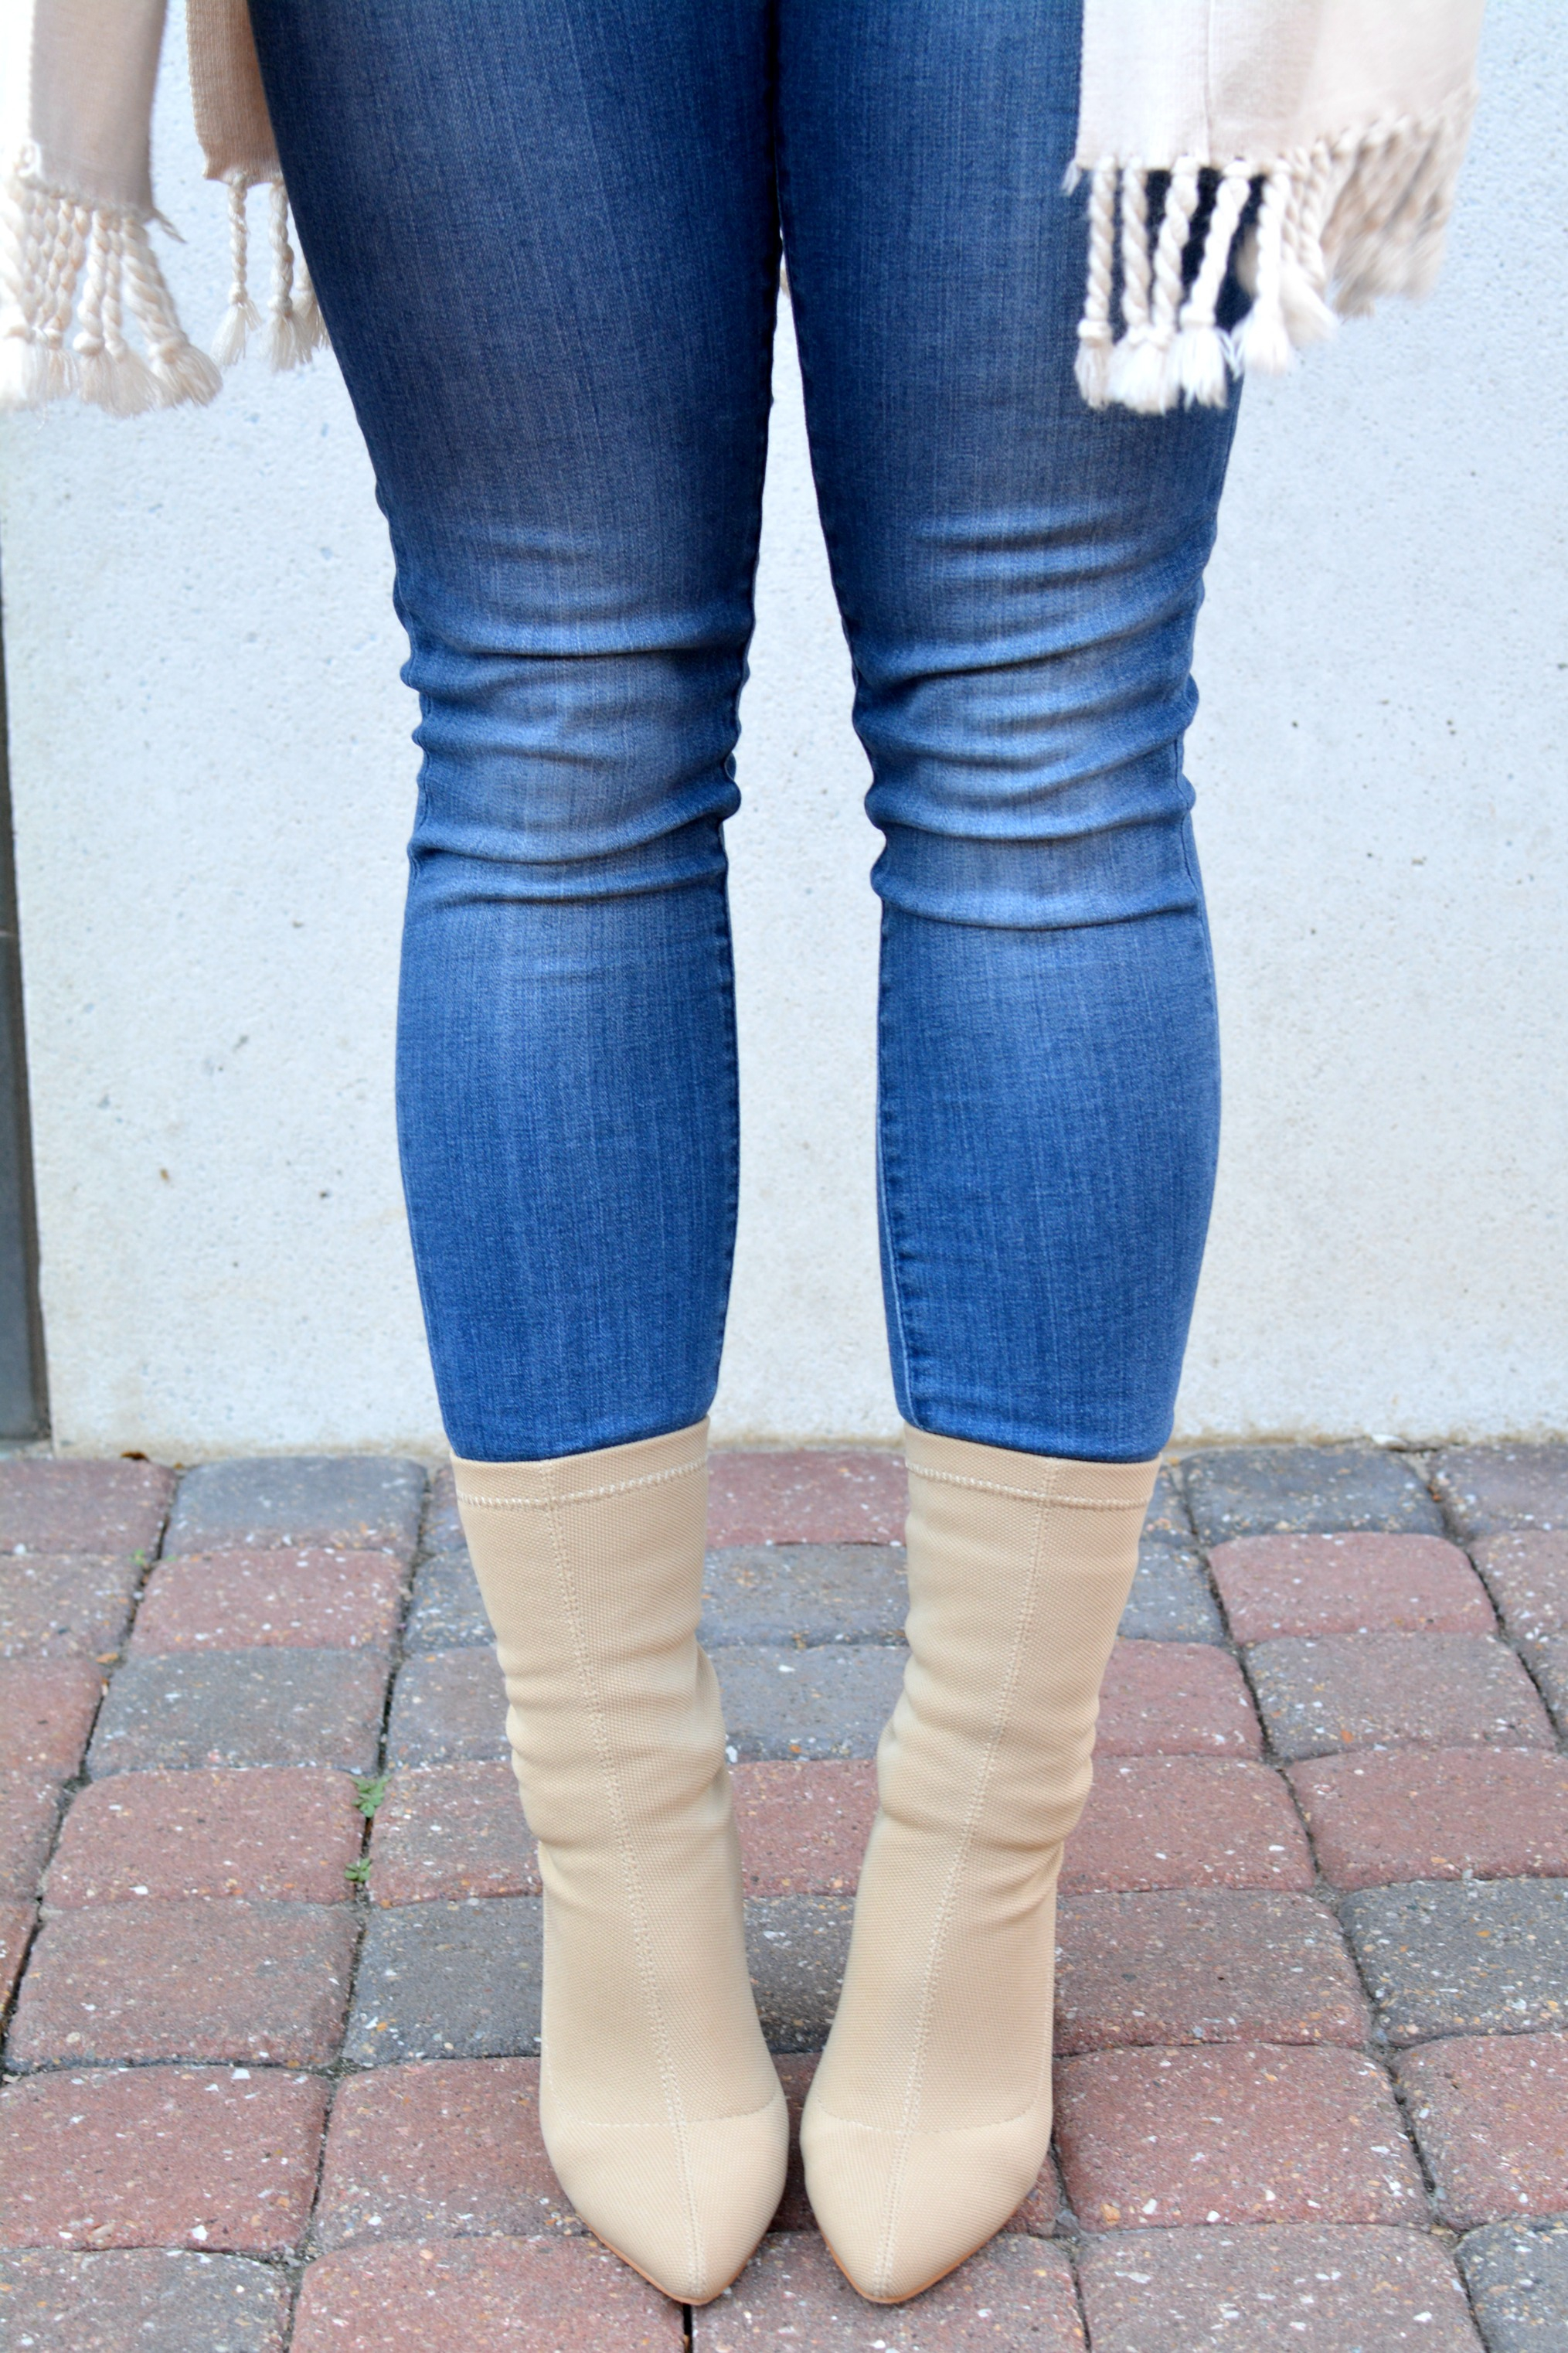 Ashley from LSR in skinny jeans and nude sock boots